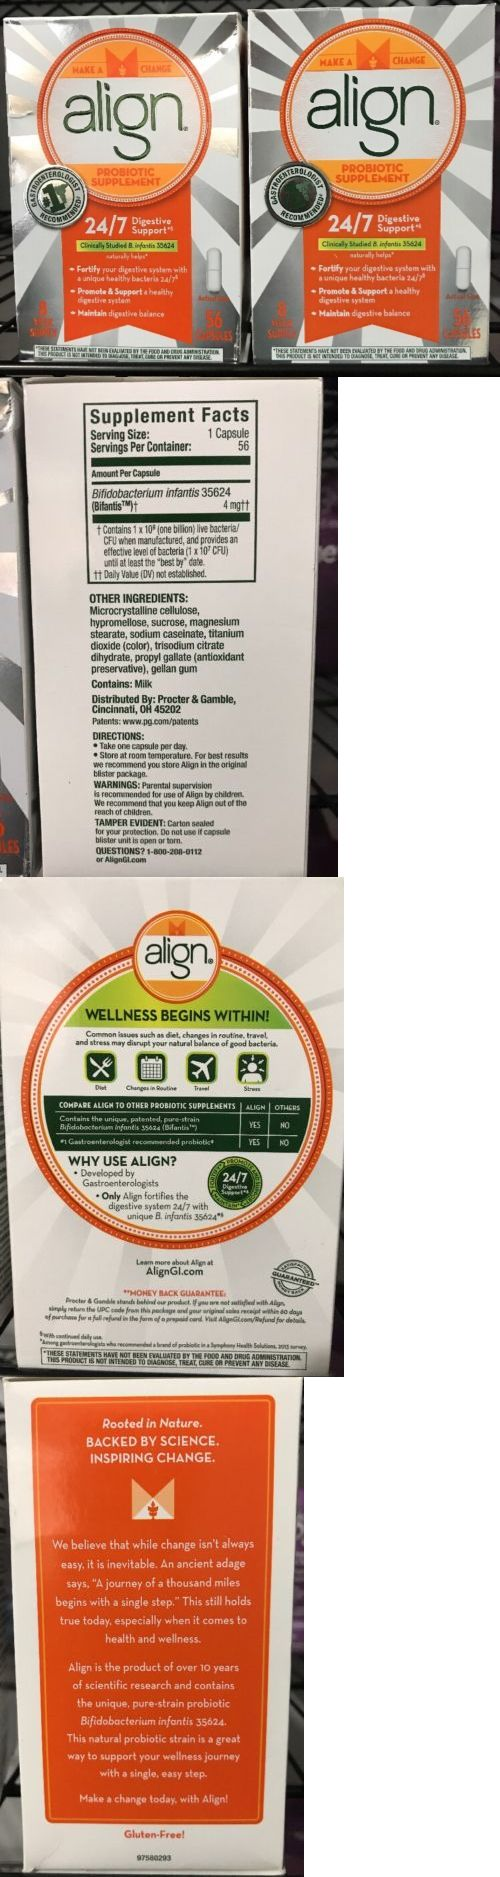 Digestion and Nausea: Align Probiotic Supplement 112 Capsules 24 7 Digestive System Support -> BUY IT NOW ONLY: $50 on eBay!